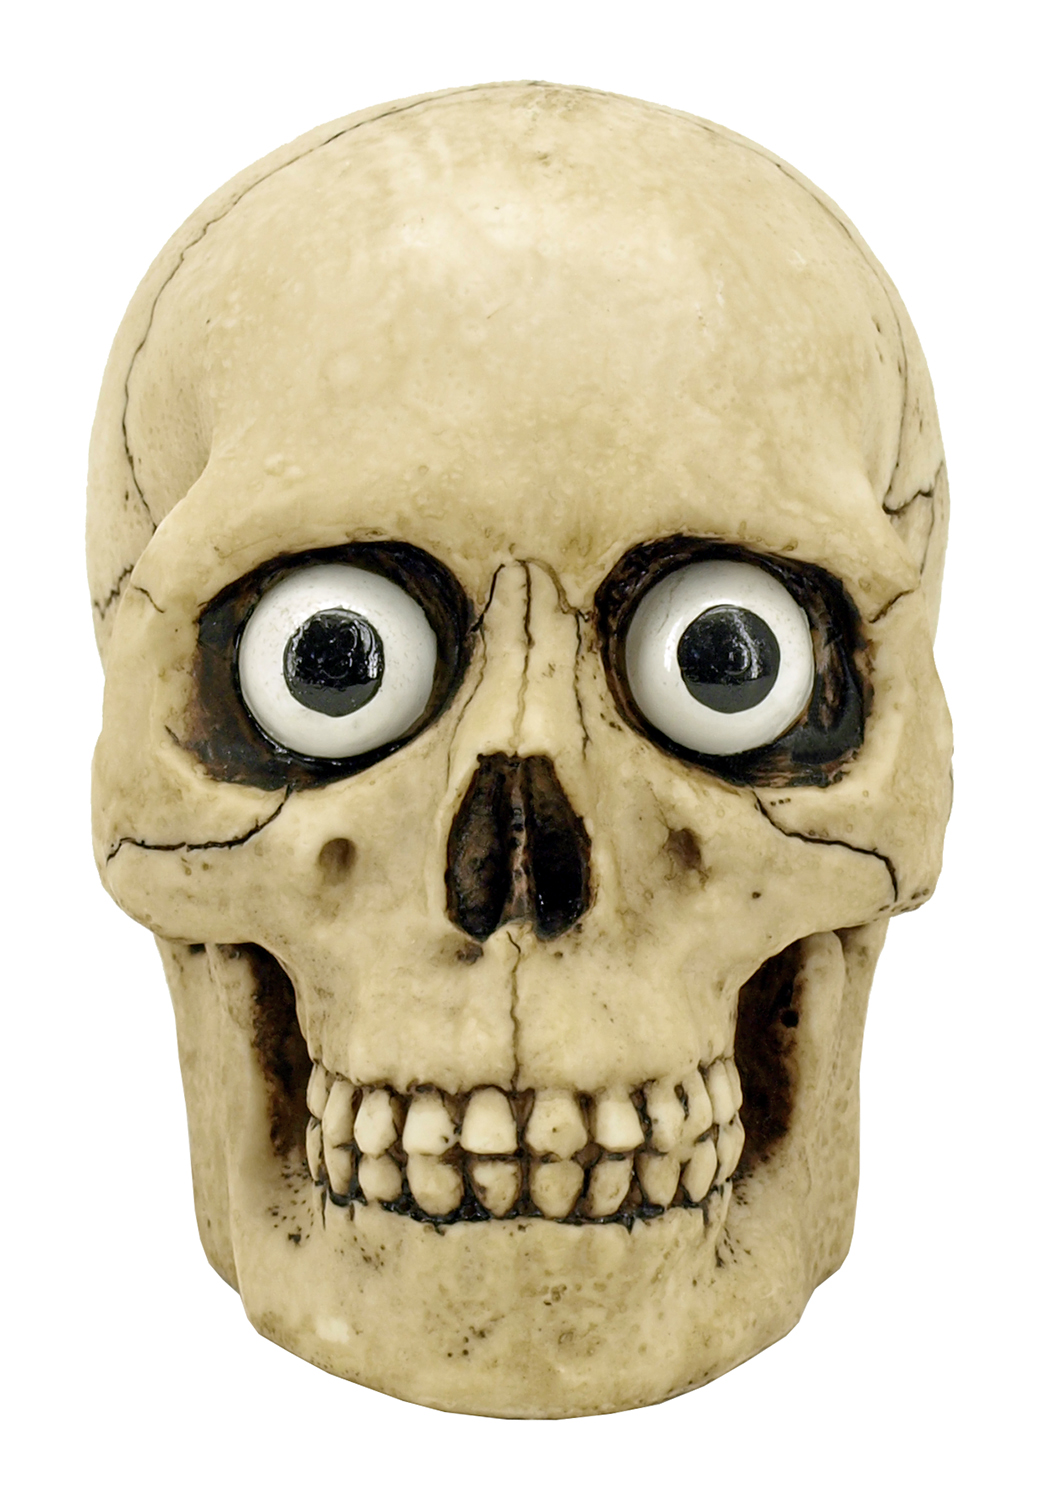 Skull with Eyes Statue Figurine